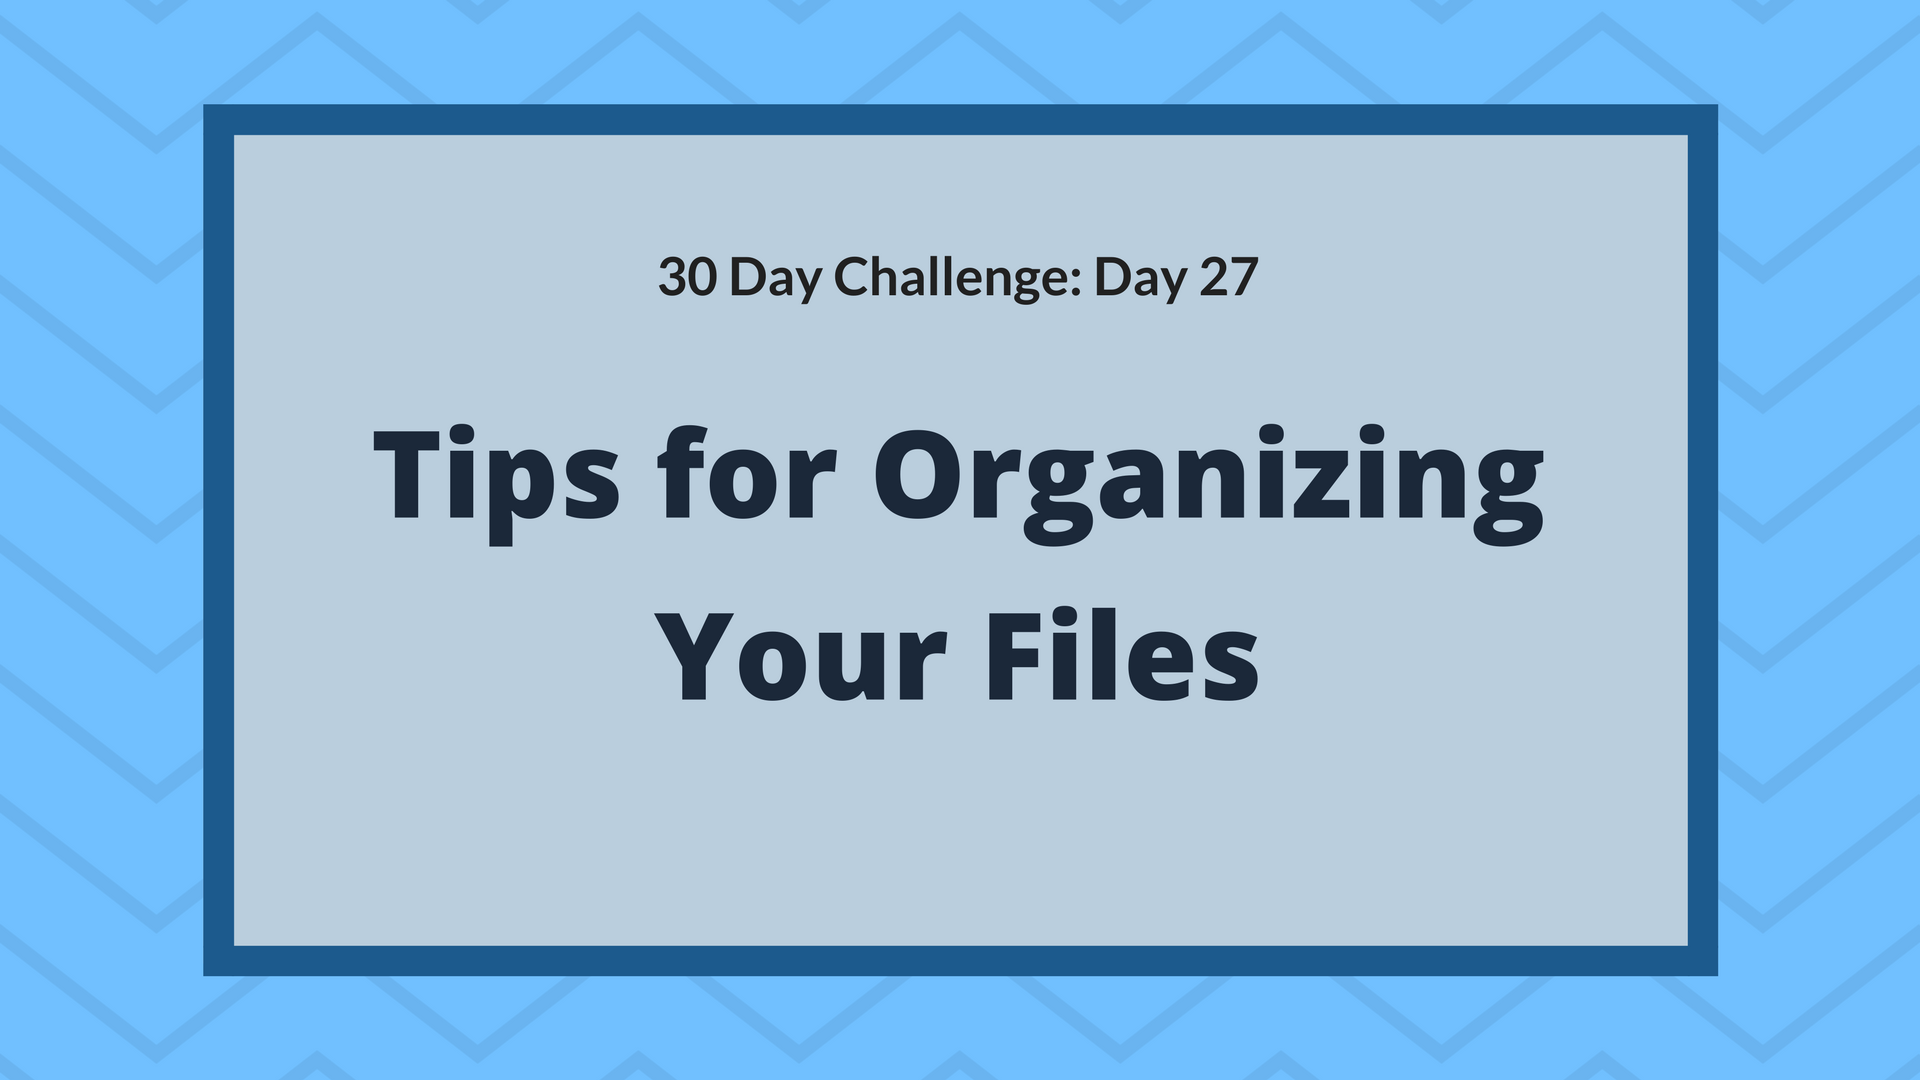 Tips for organizing your files